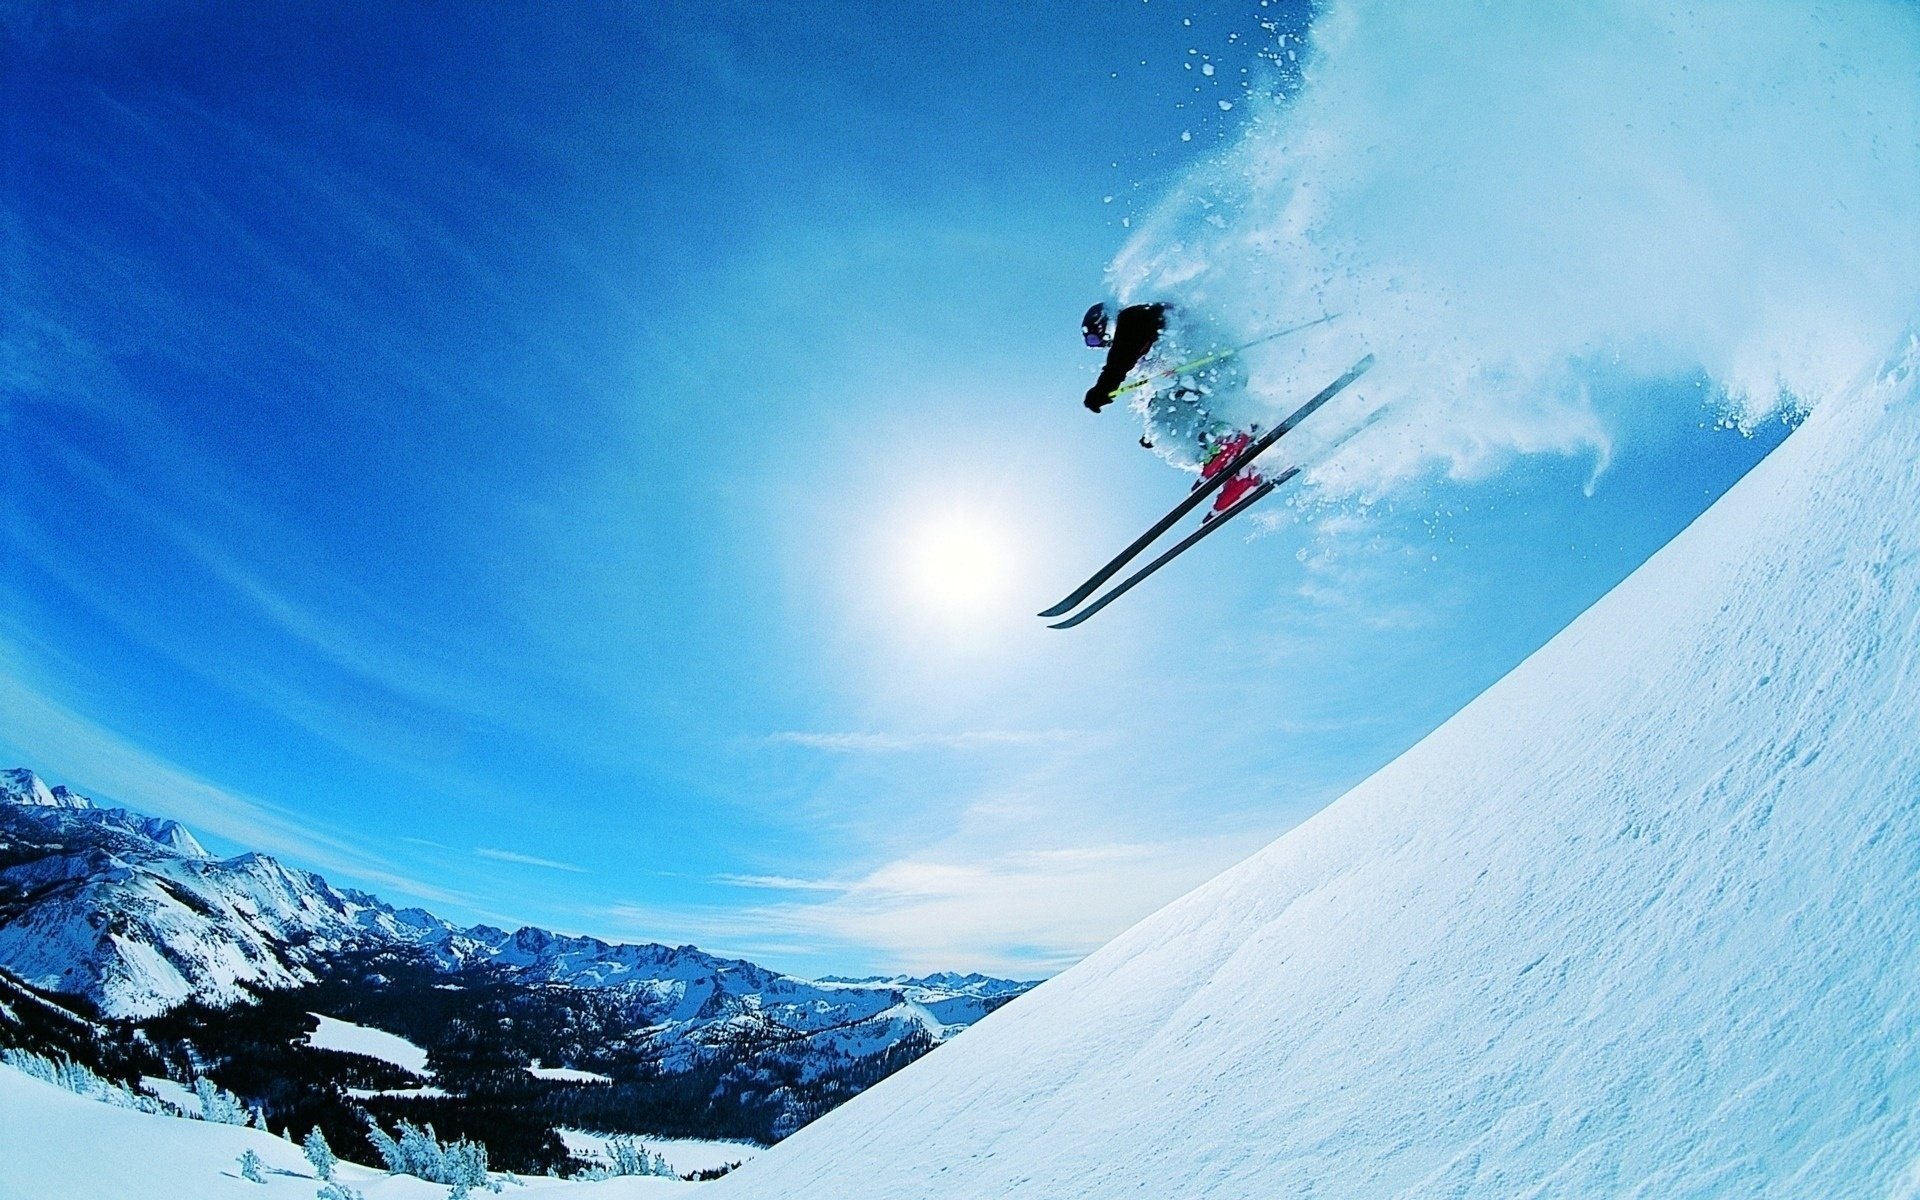 How To Decorate With Ski Wallpaper